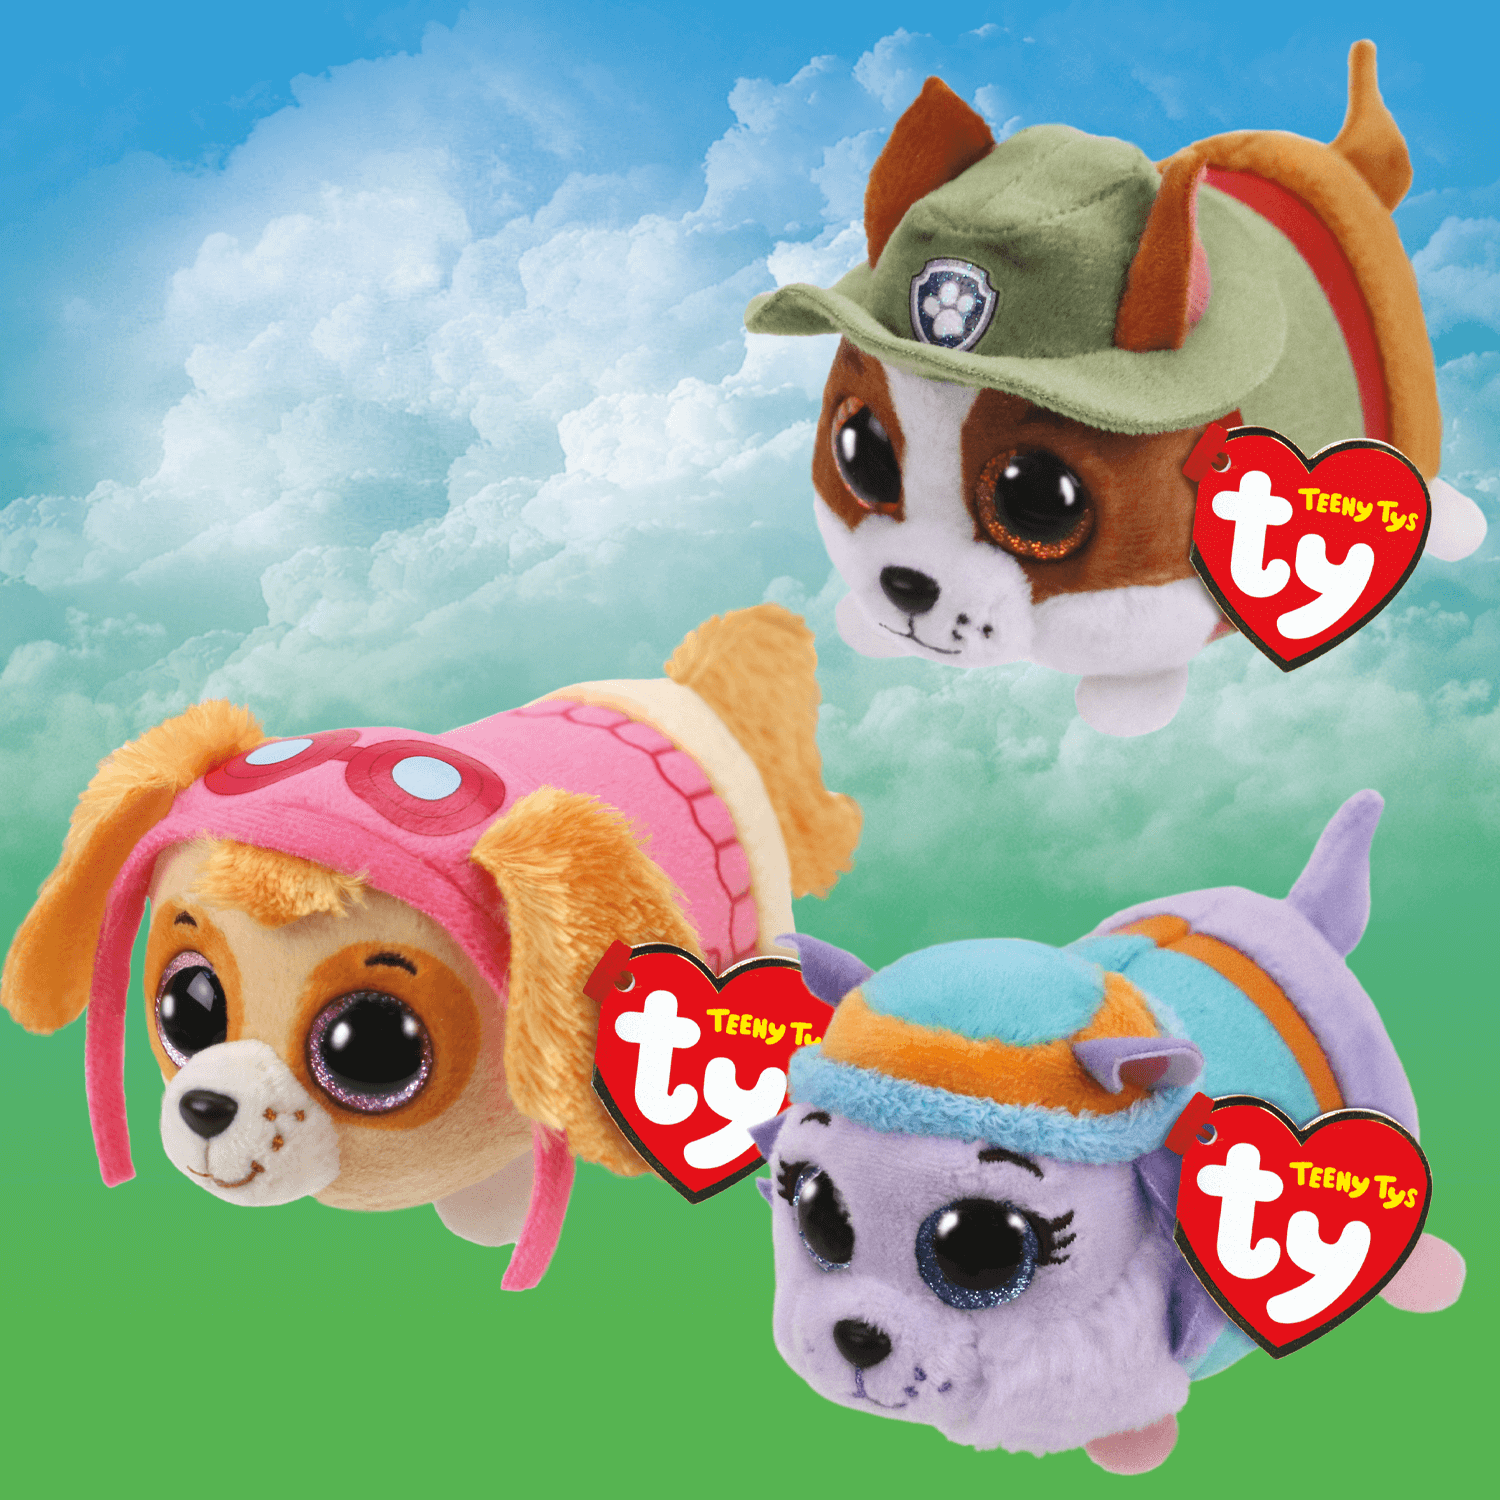 Rescue Bundle - Teeny Ty Paw Patrol